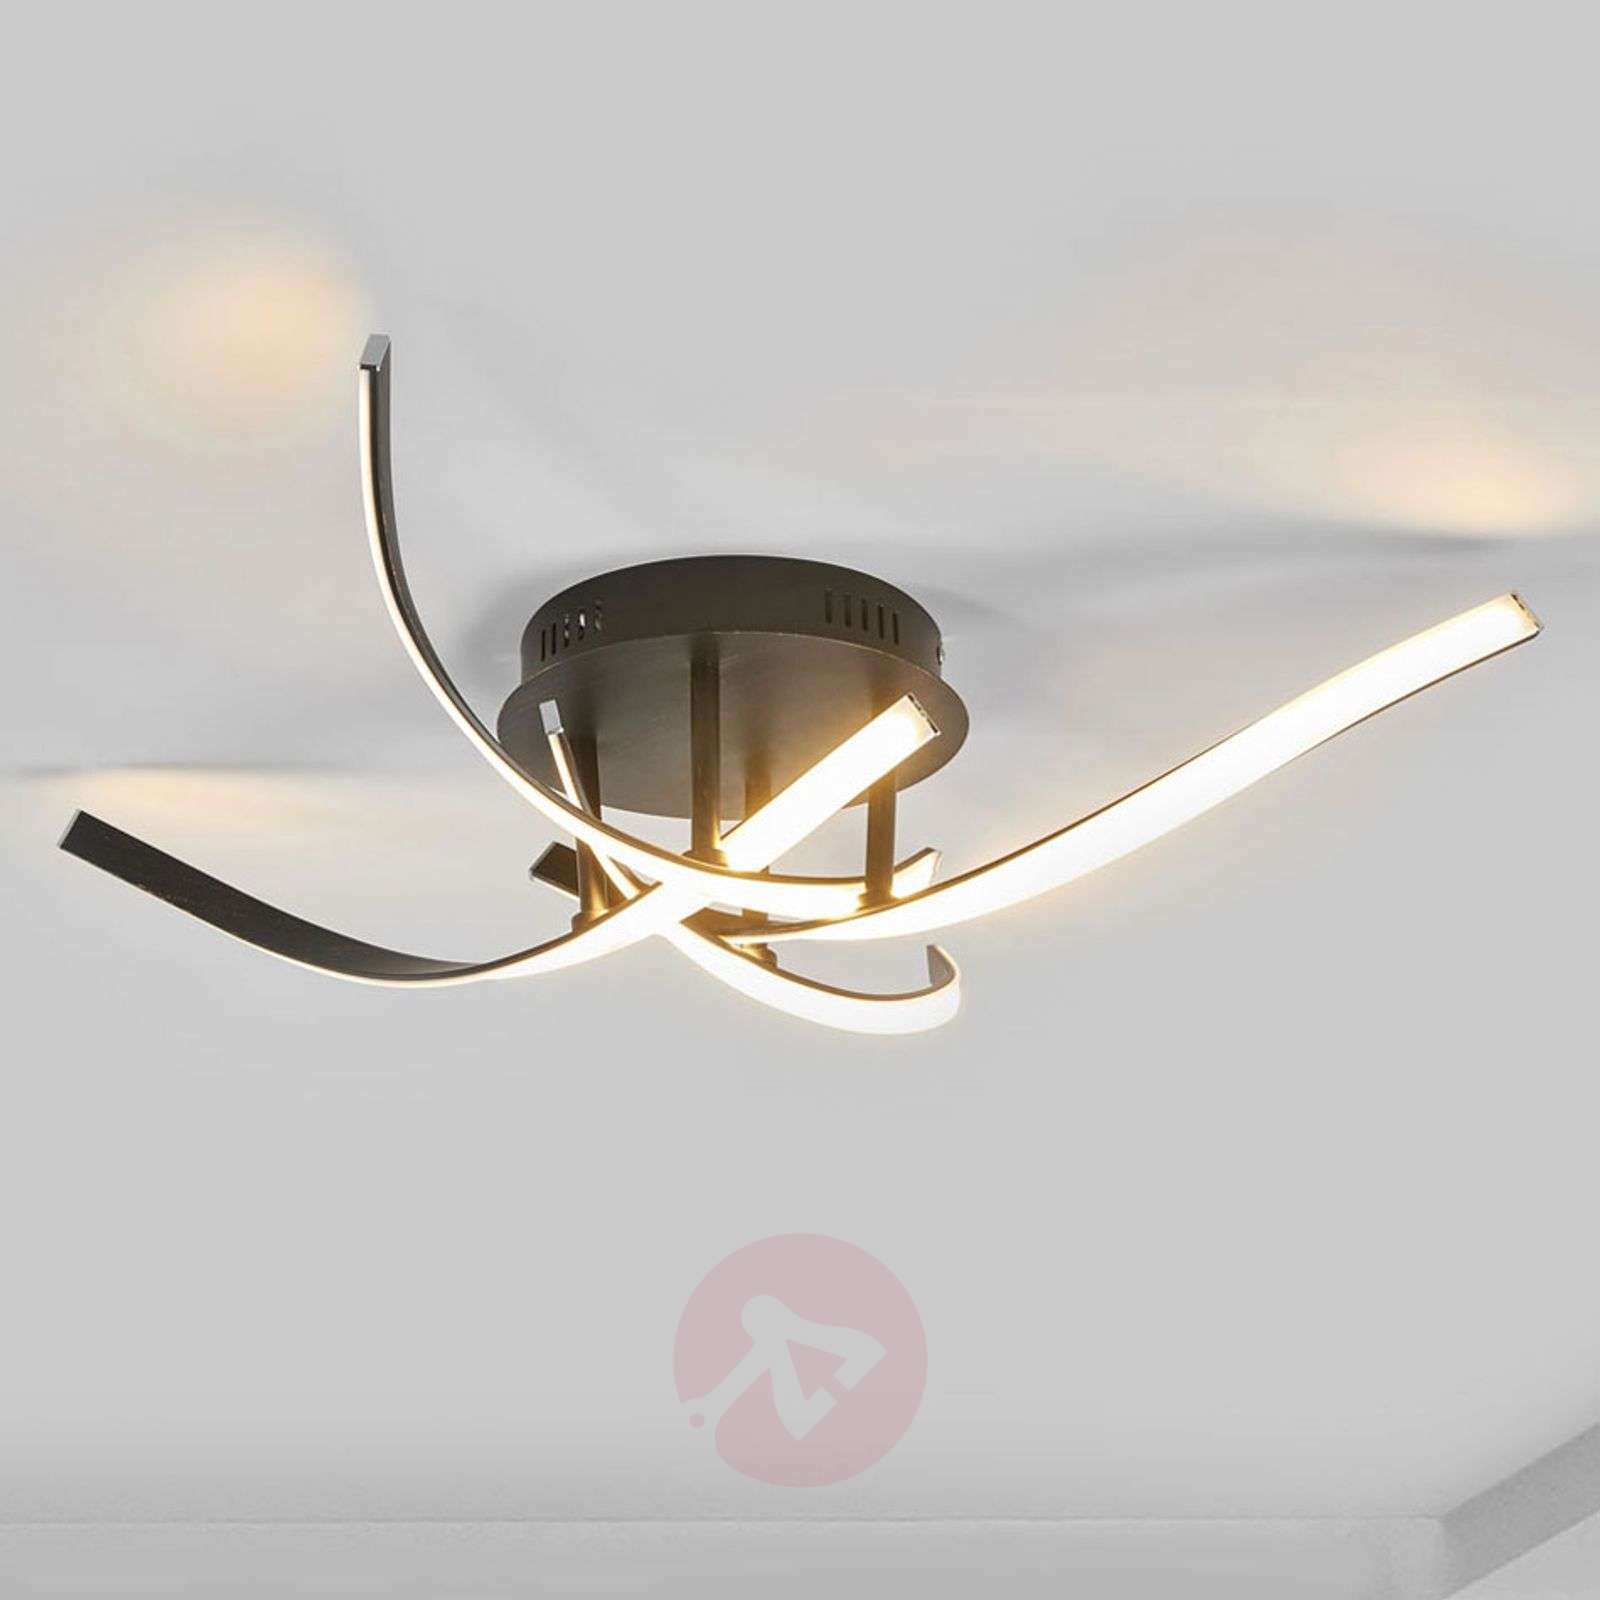 Milane dimmable led ceiling lamp lights milane dimmable led ceiling lamp 9985061 02 aloadofball Images